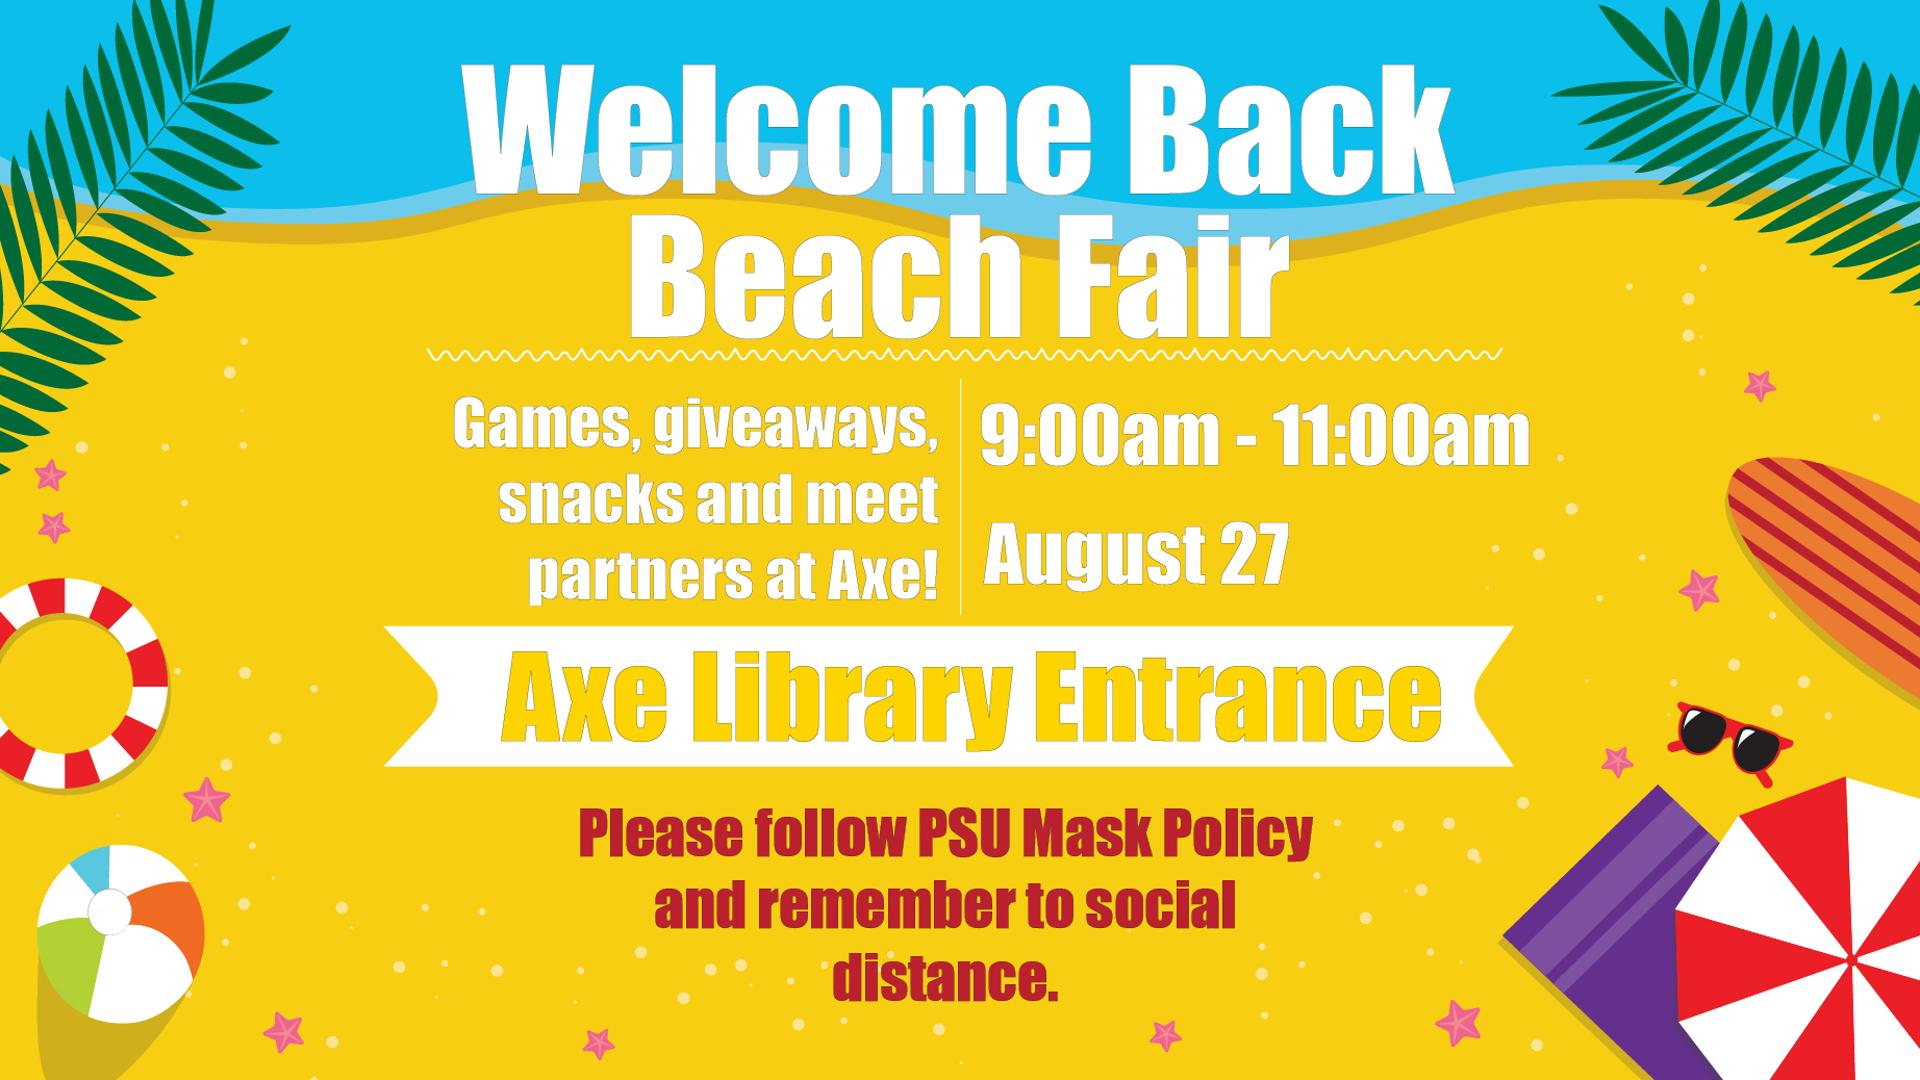 welcome_beach_fair